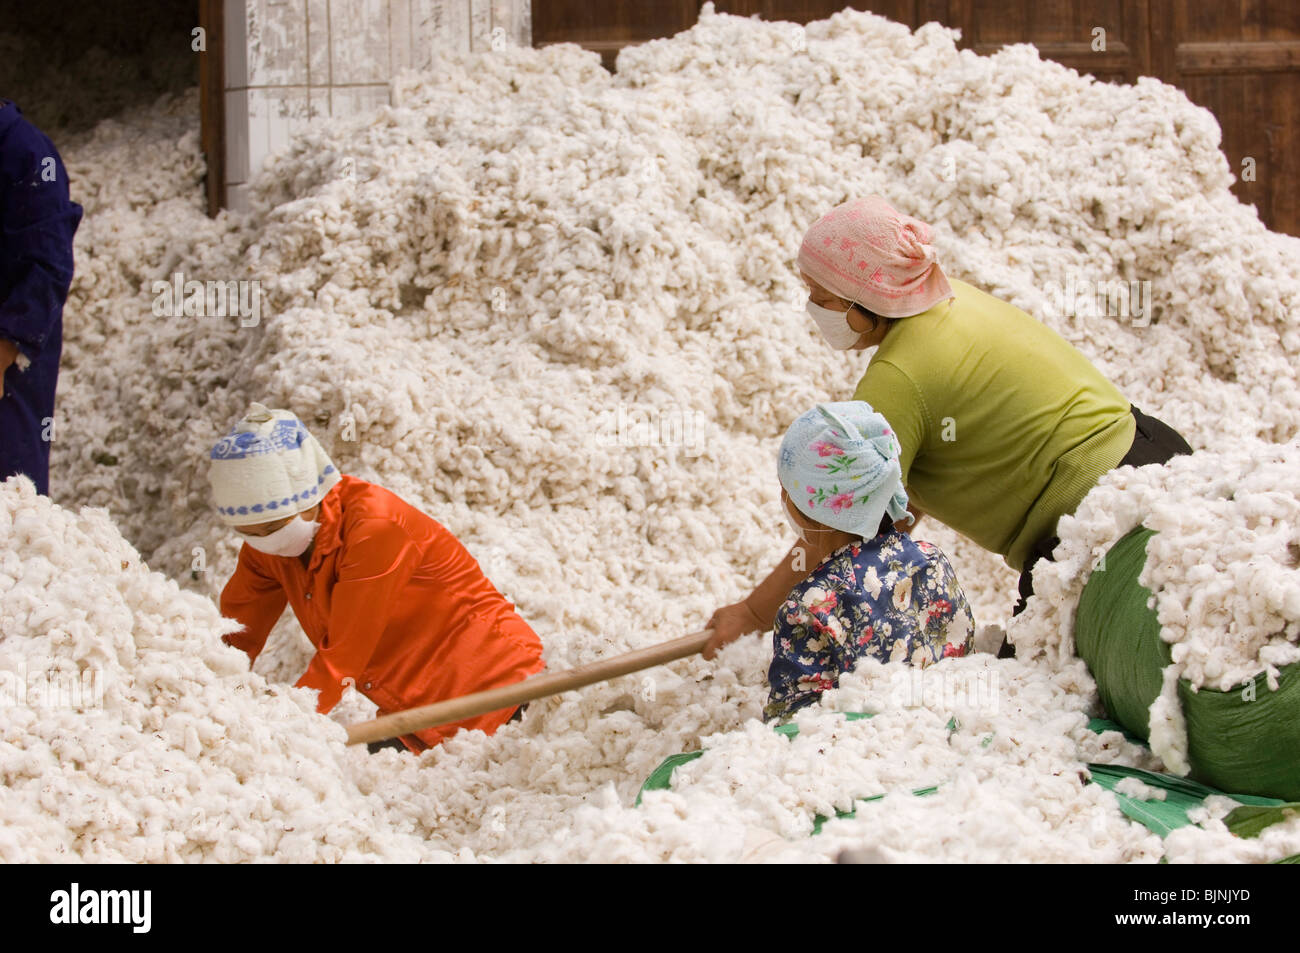 Female workers gathering cotton bolls in Hubei province. China. - Stock Image